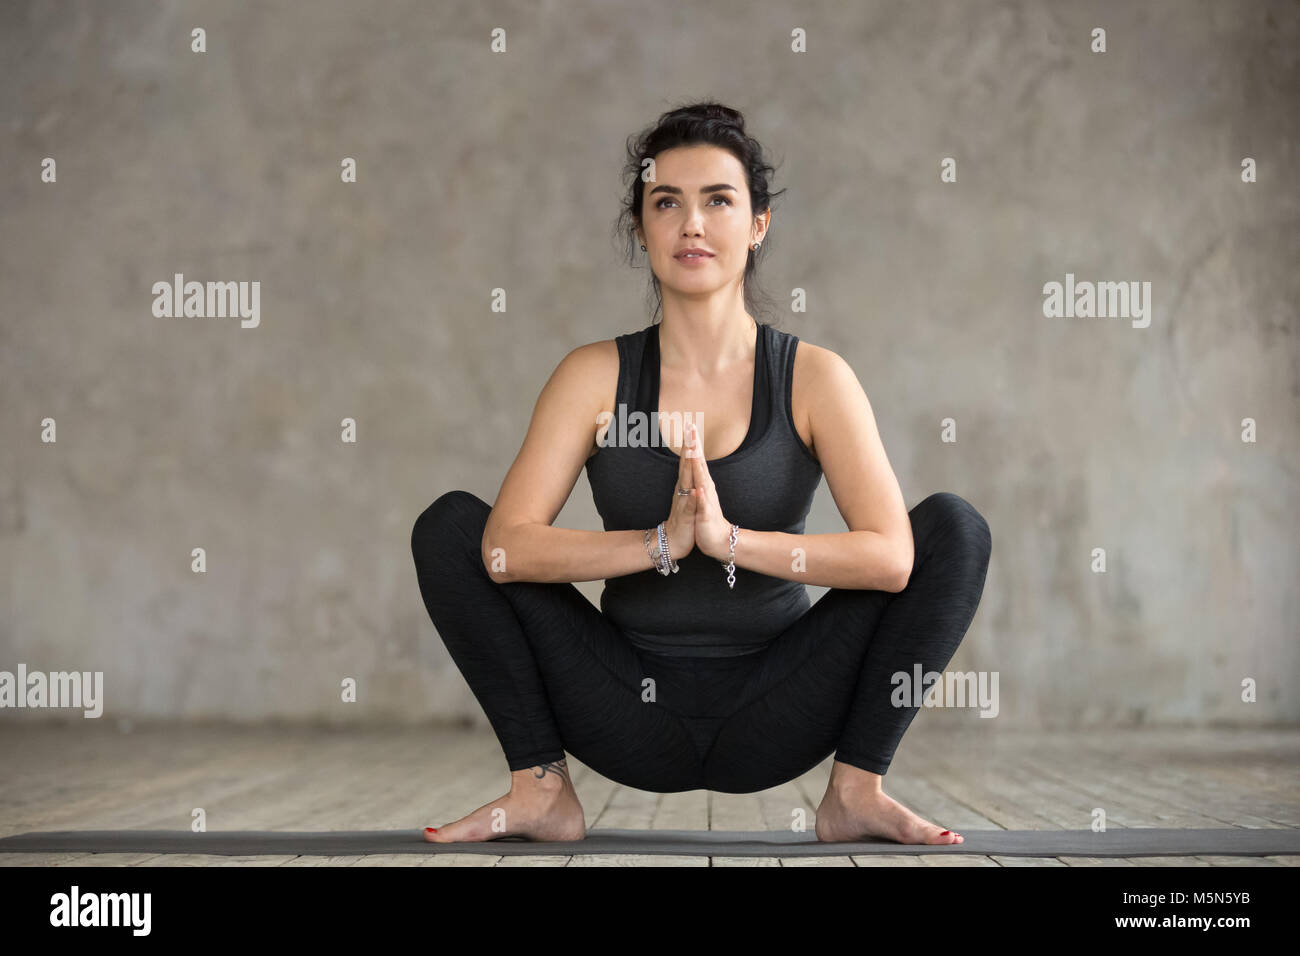 Young sporty woman practicing yoga, doing Garland exercise, Malasana pose, working out, wearing sportswear, black - Stock Image